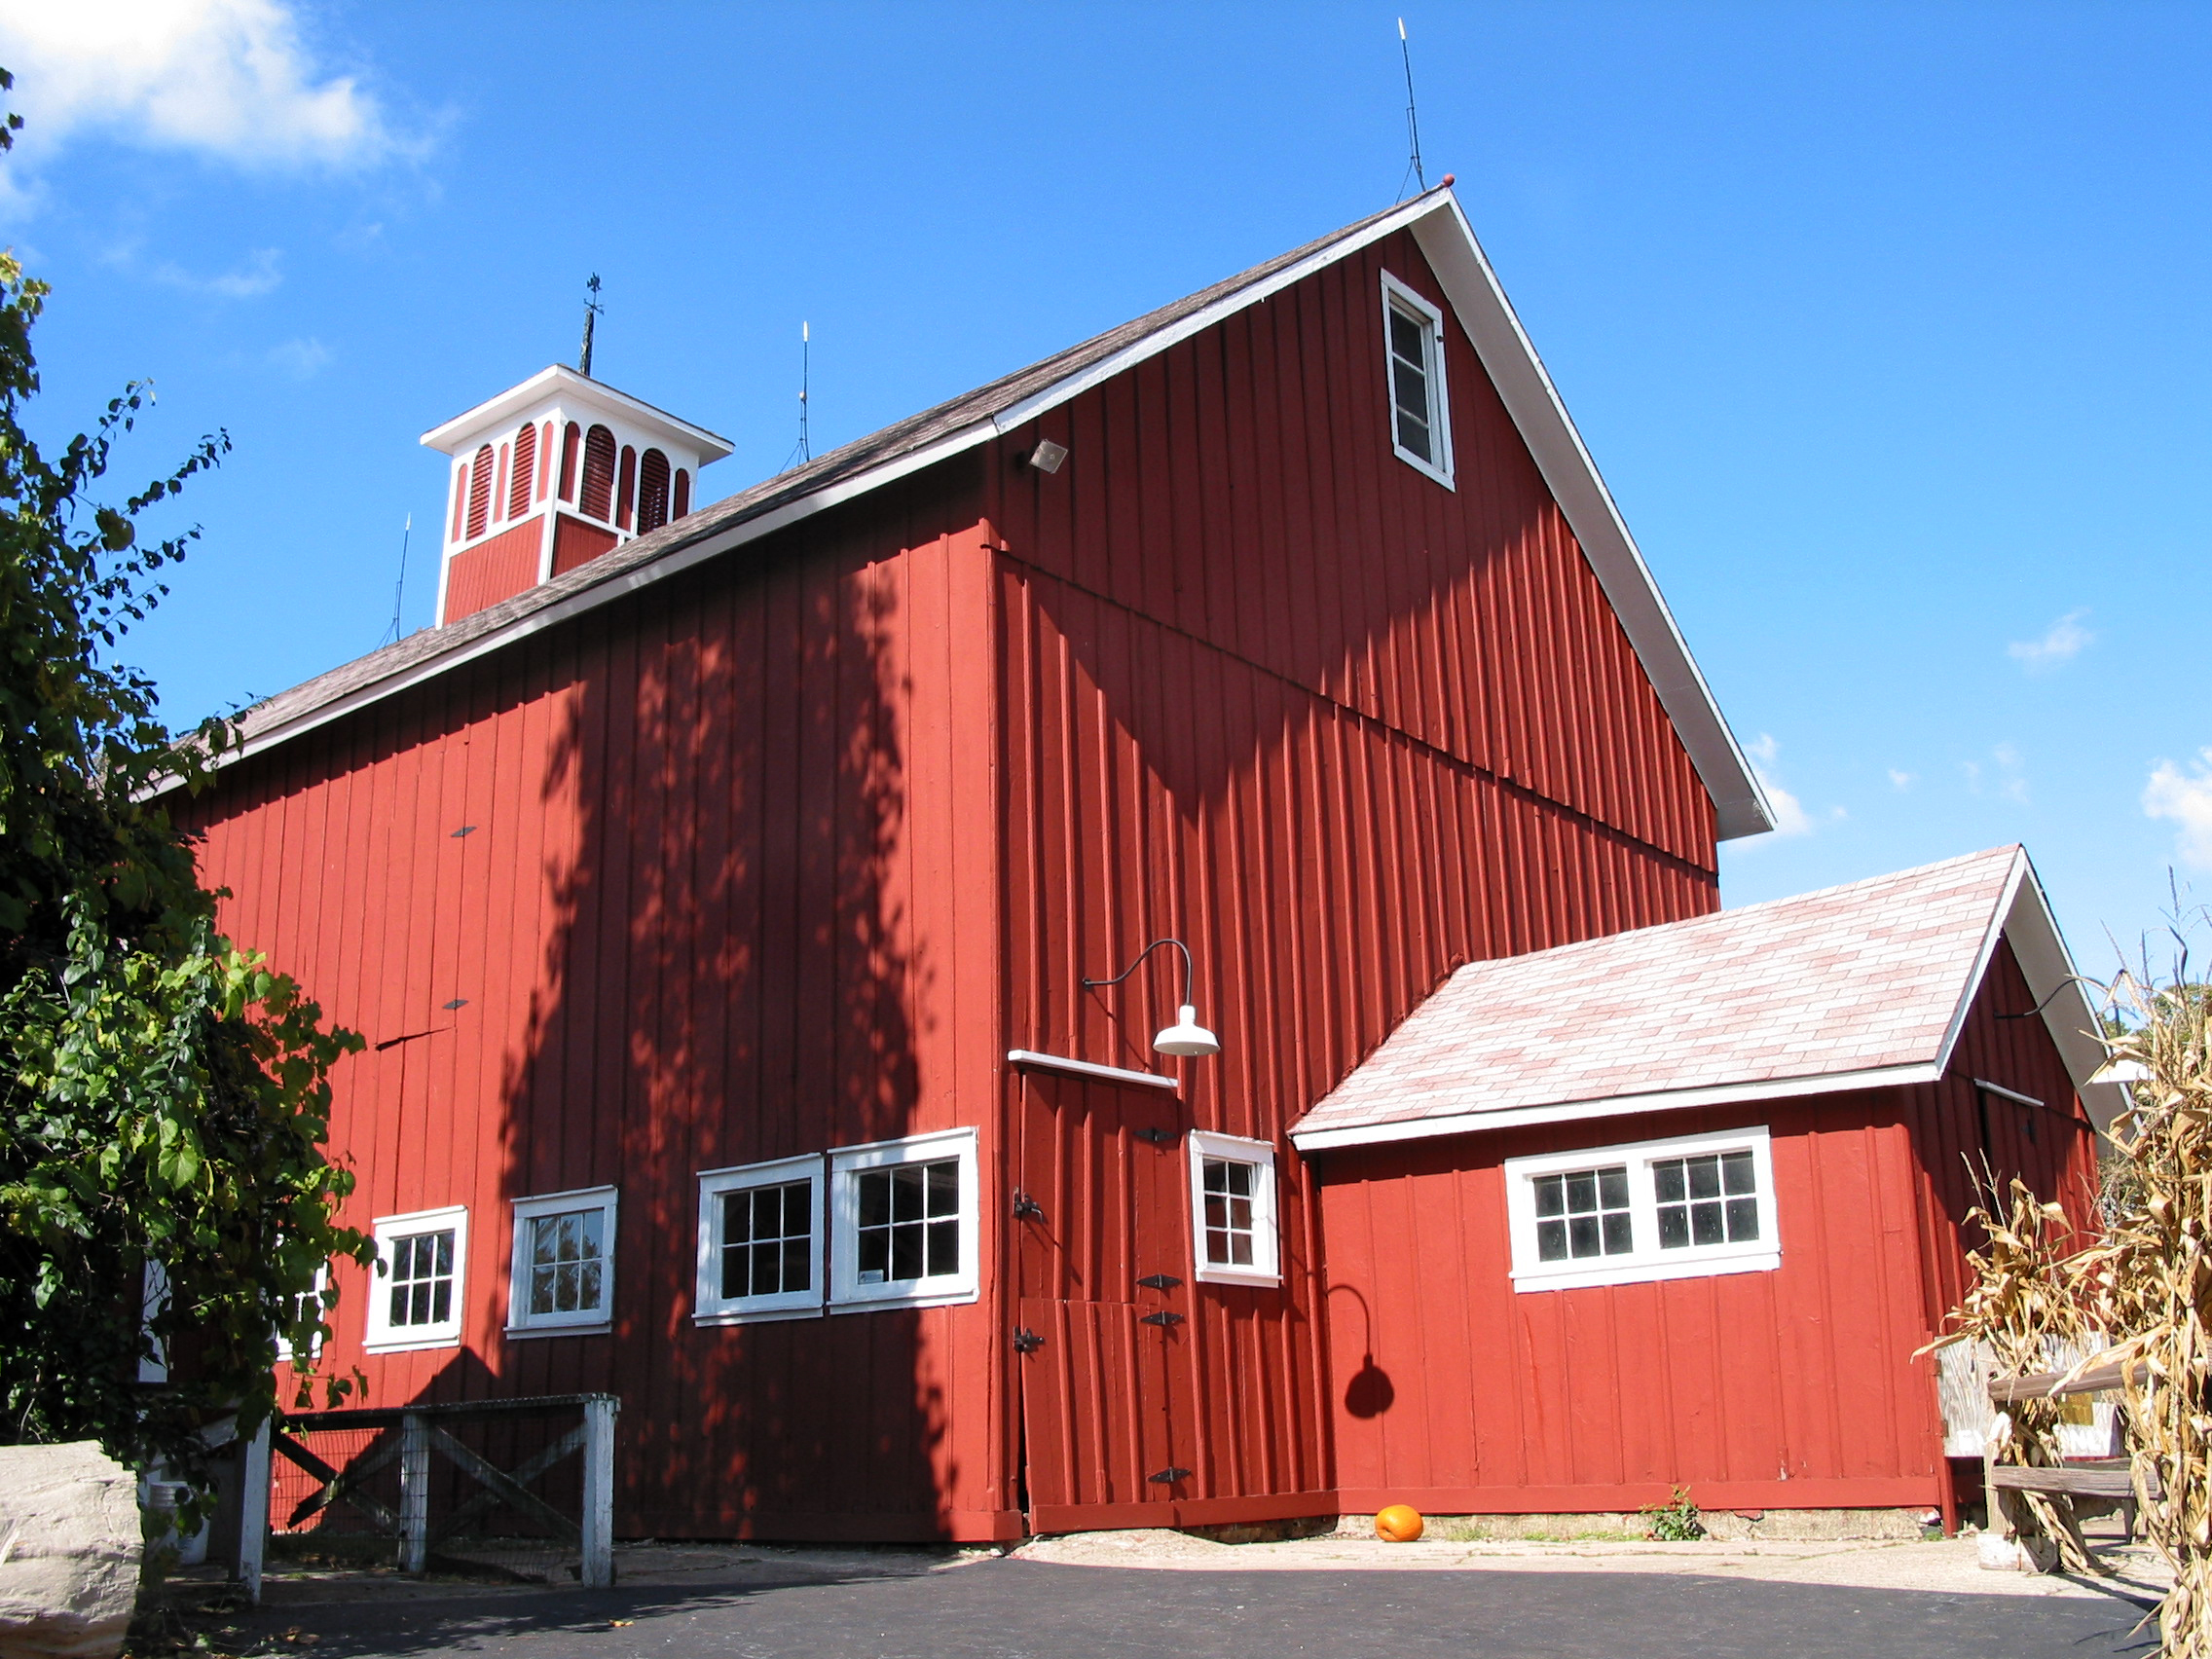 Barn free stock photo image picture barn red for Farm house construction